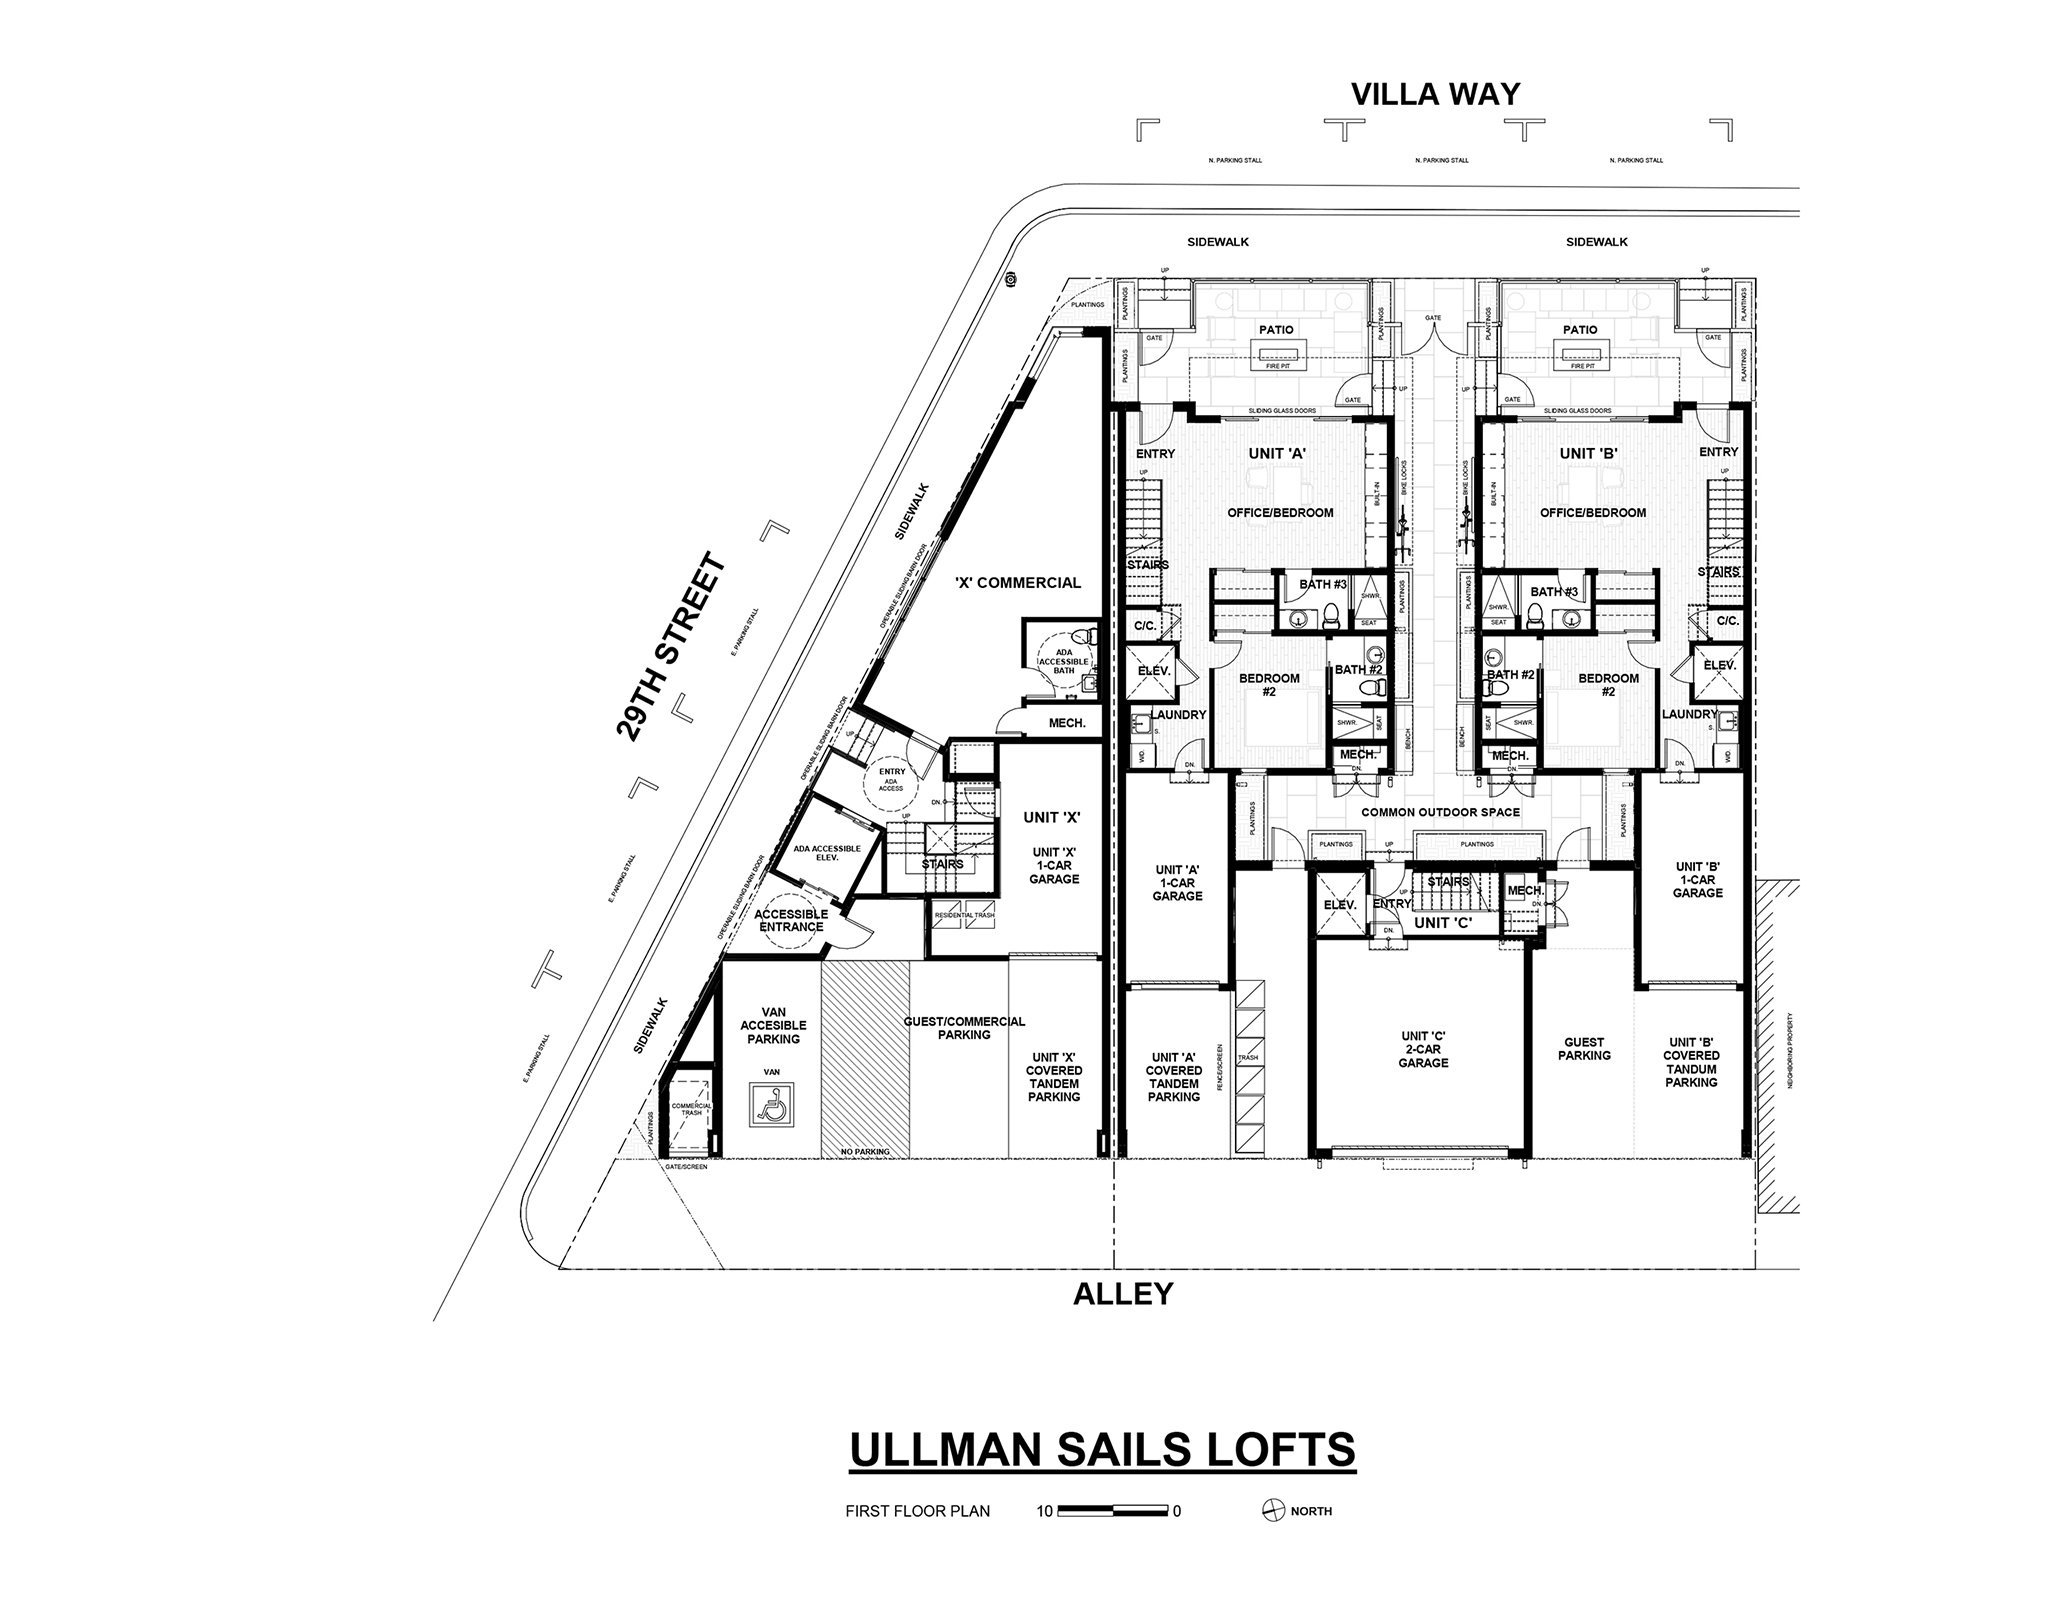 5607_DA2017_08_ FIRST FLOOR PLAN.jpg